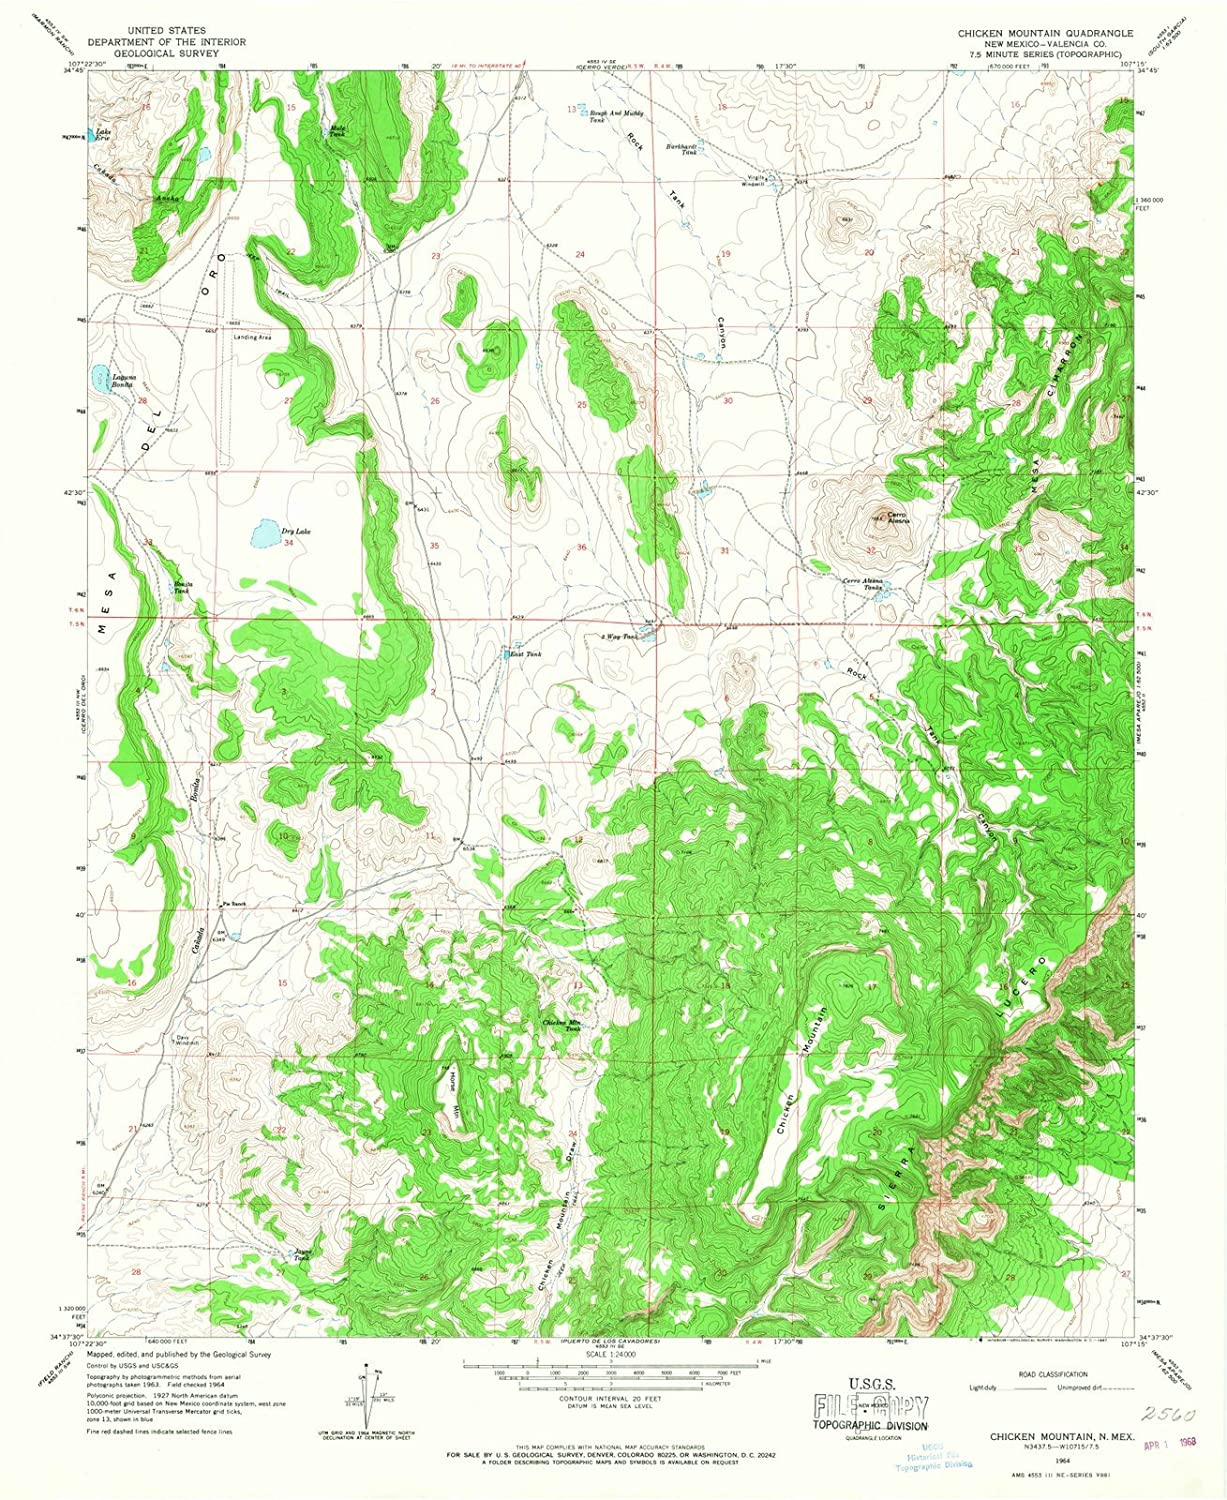 Amazon.com: New Mexico Maps - 1964 Chicken Mountain, NM USGS ...